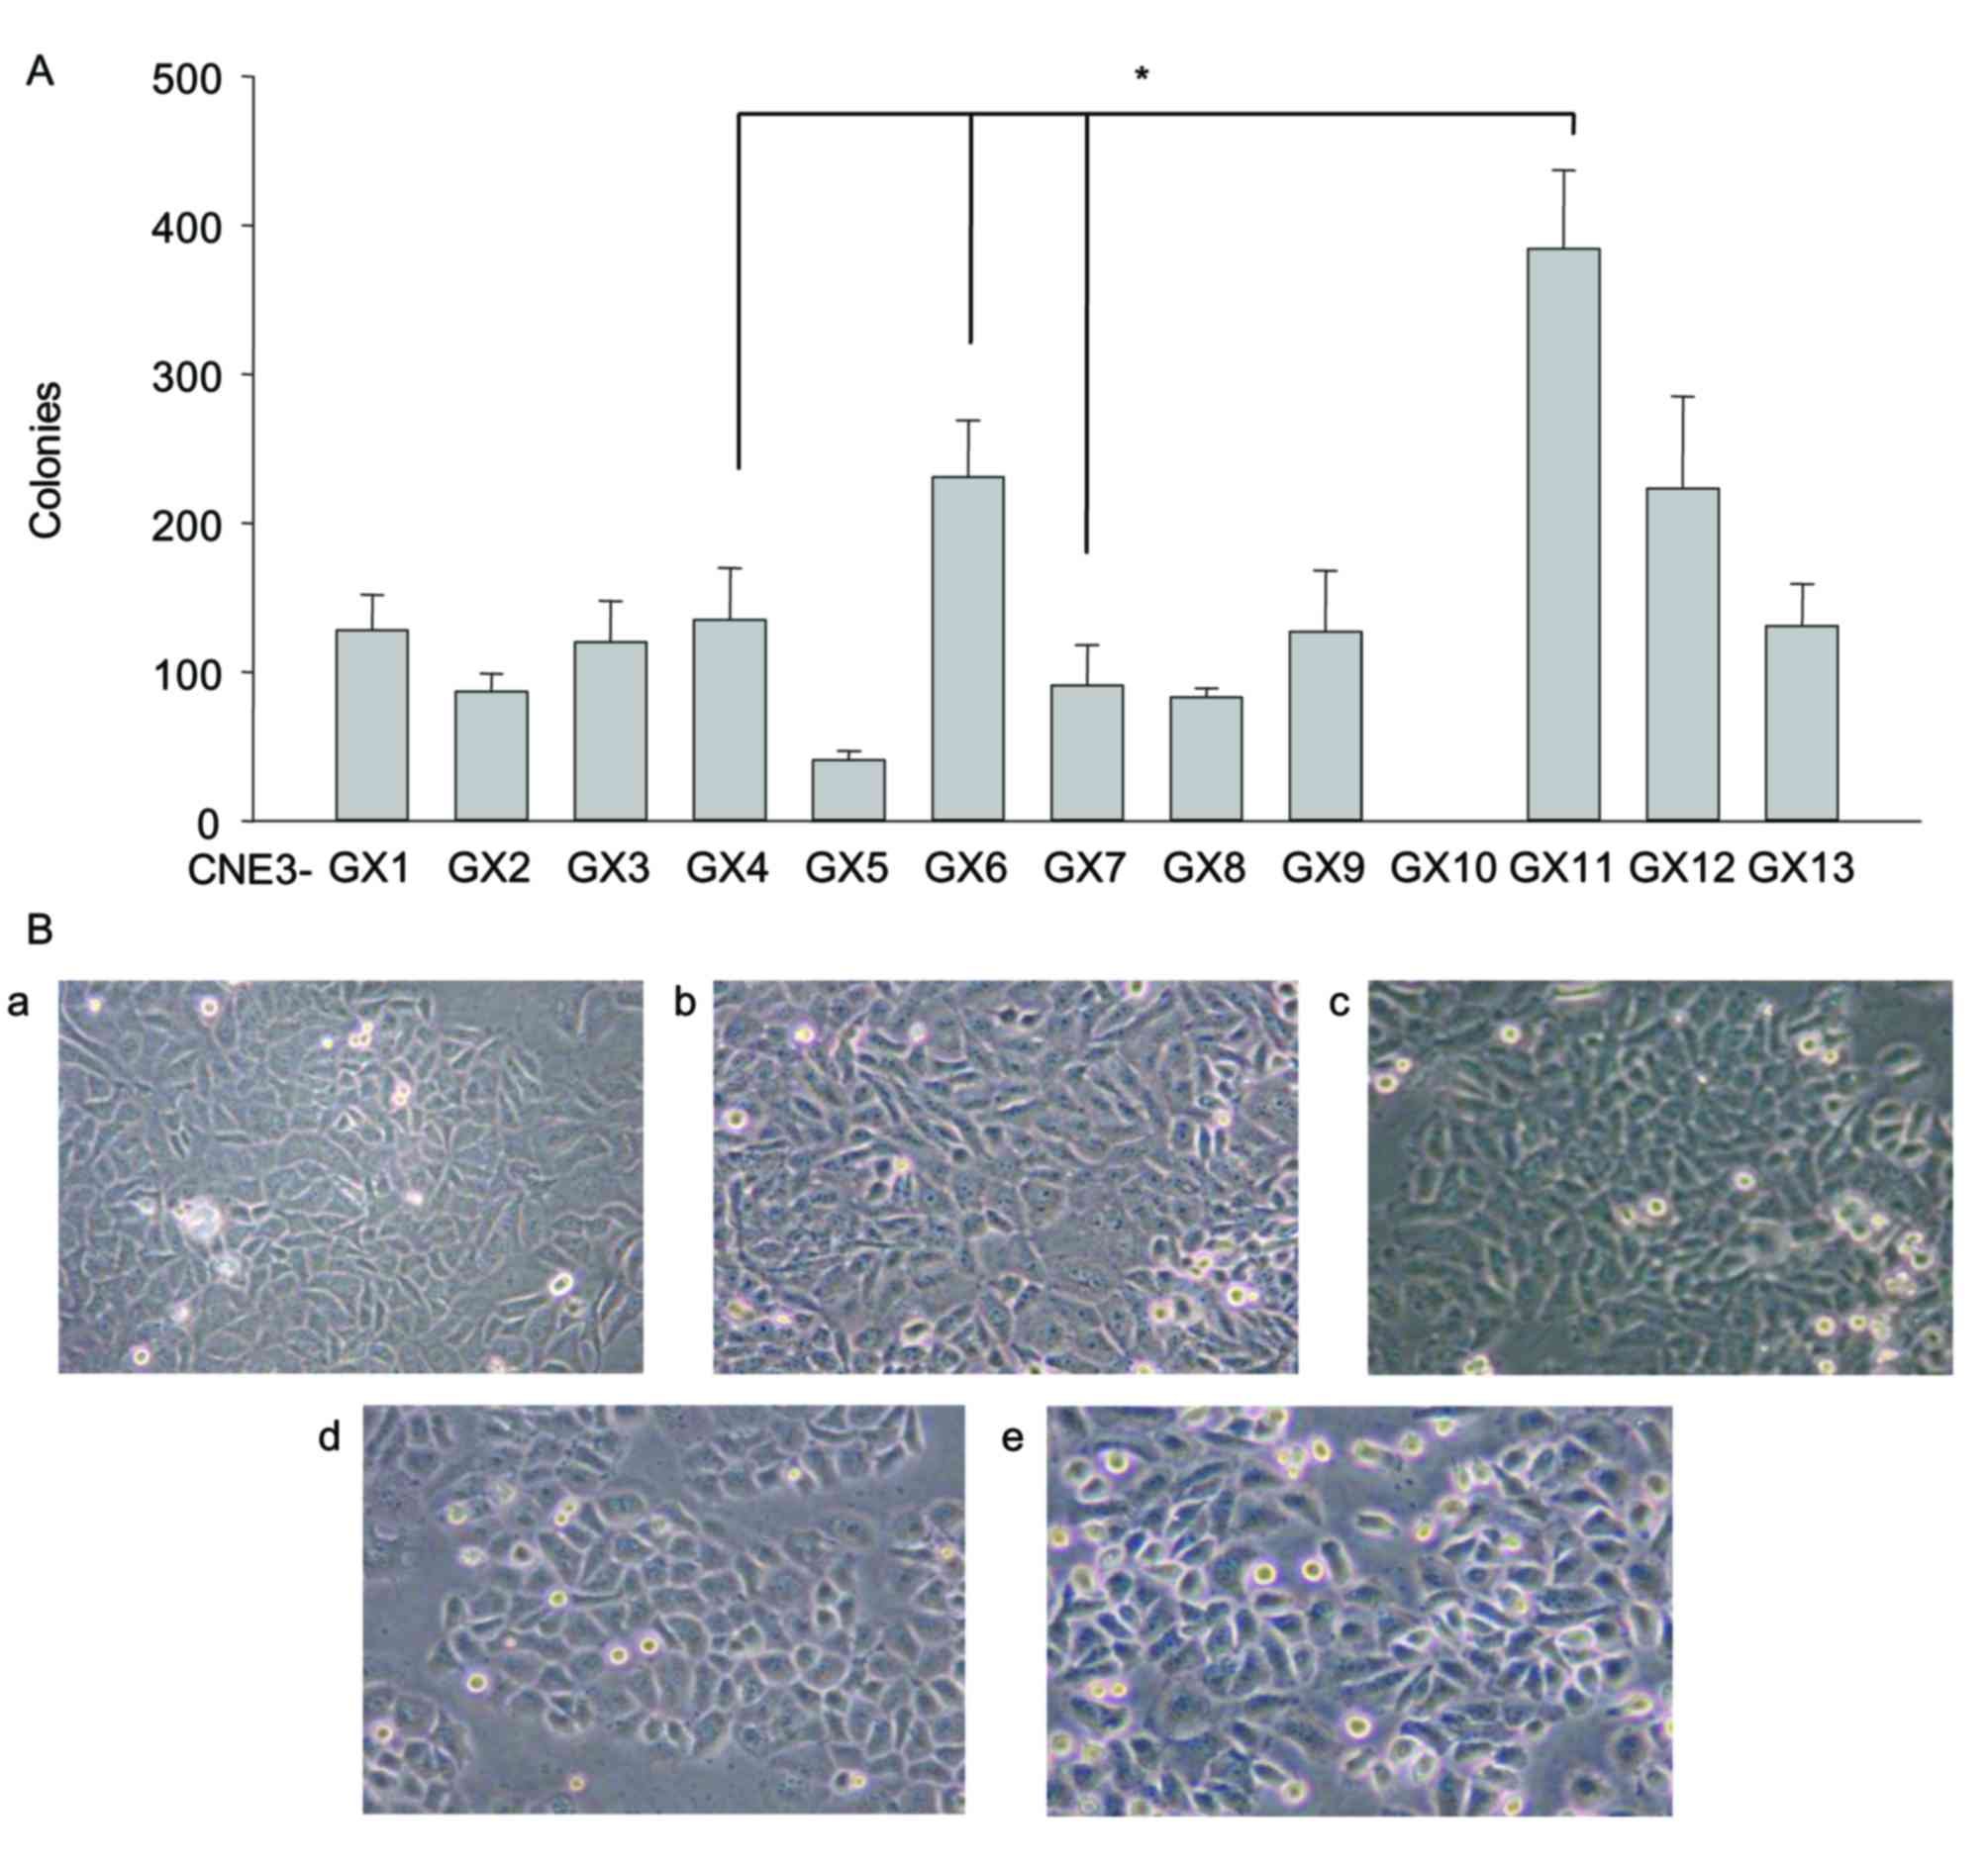 Differences in Zbtb7a expression cause heterogeneous changes in